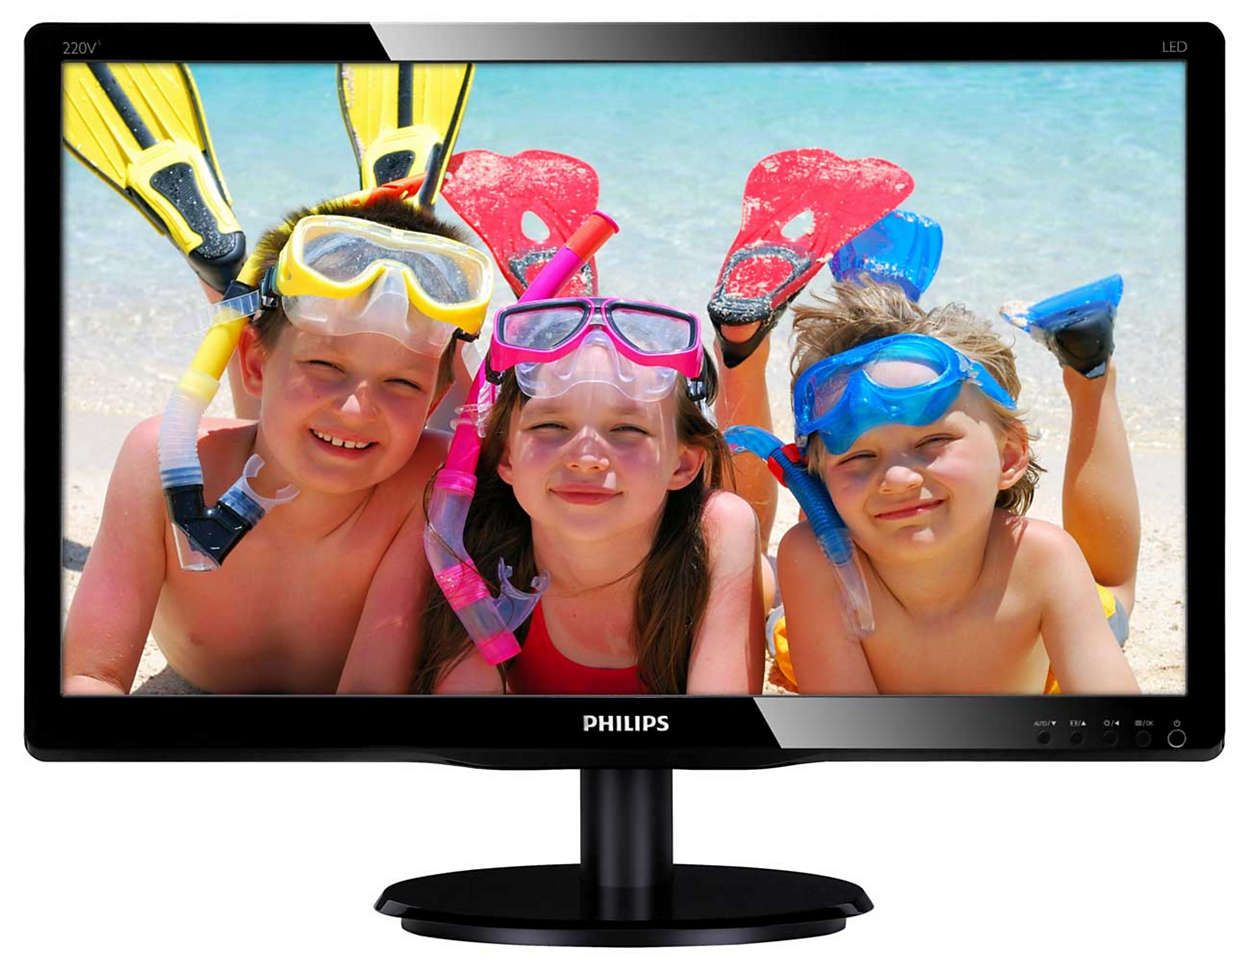 Philips LCD 220V4LSB/00 22'' LED, 5ms, DC10mil, VGA, DVI, 1680x1050, č